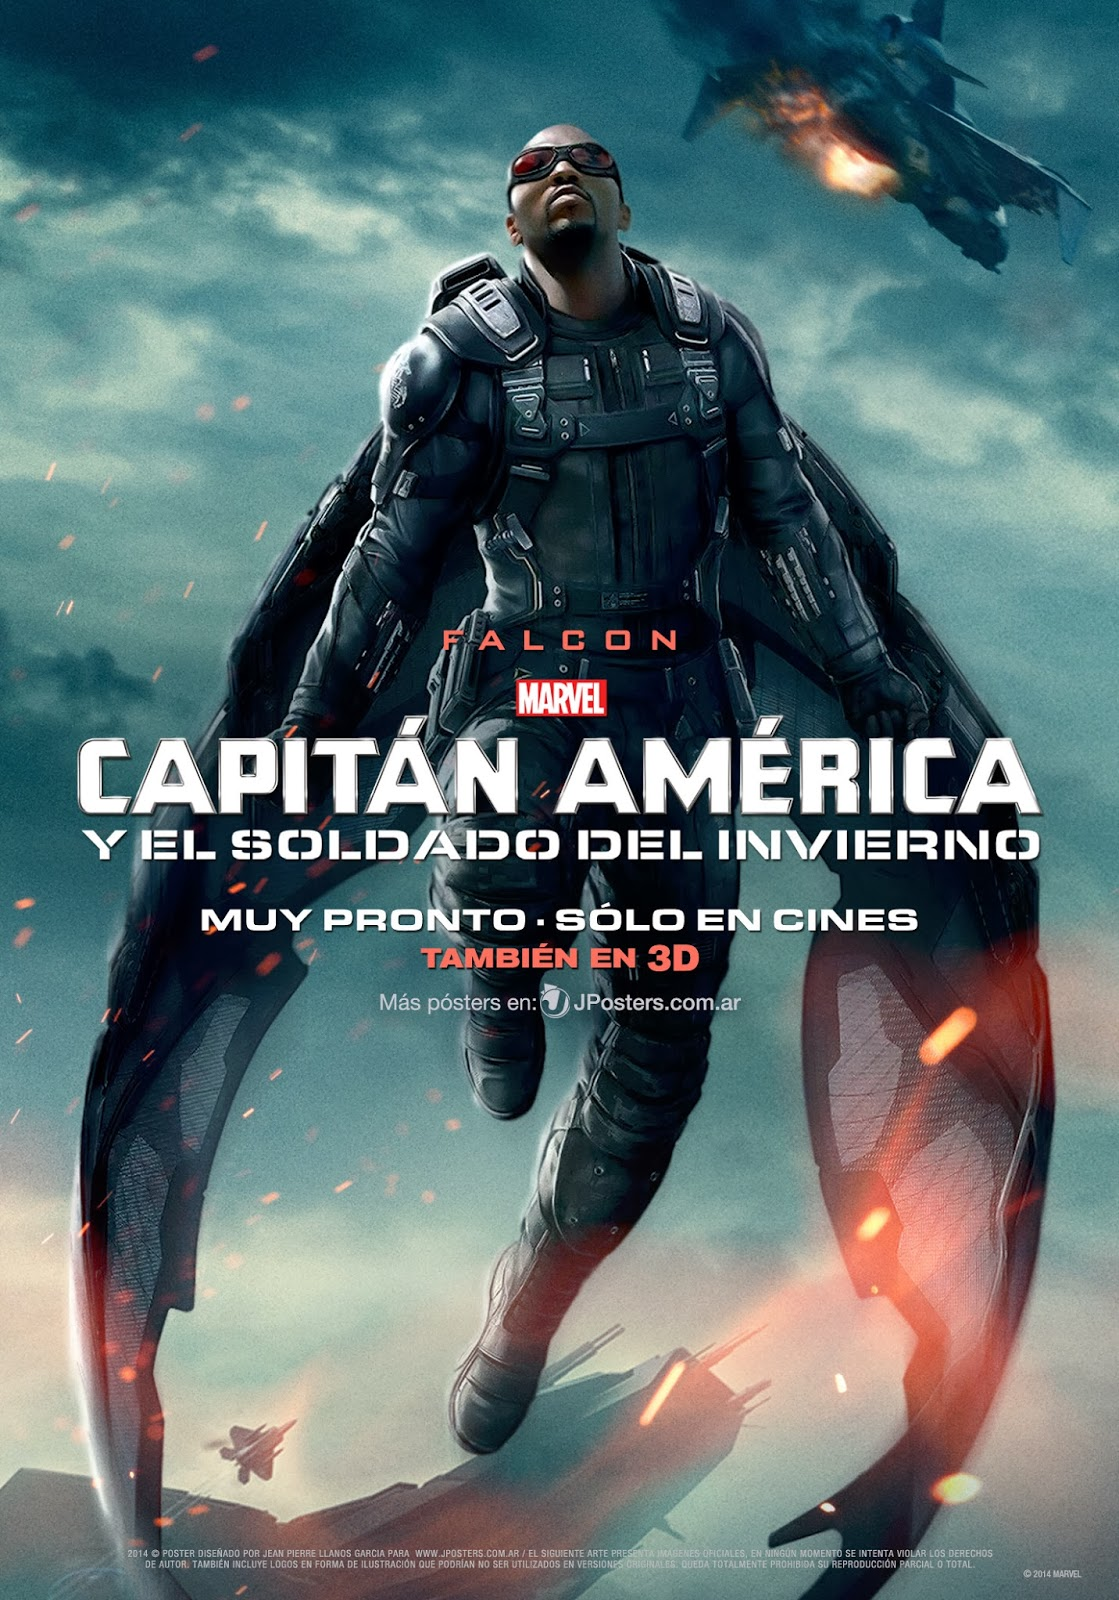 New Movie Poster for Captain America 2: The Winter Soldier featuring Falcon